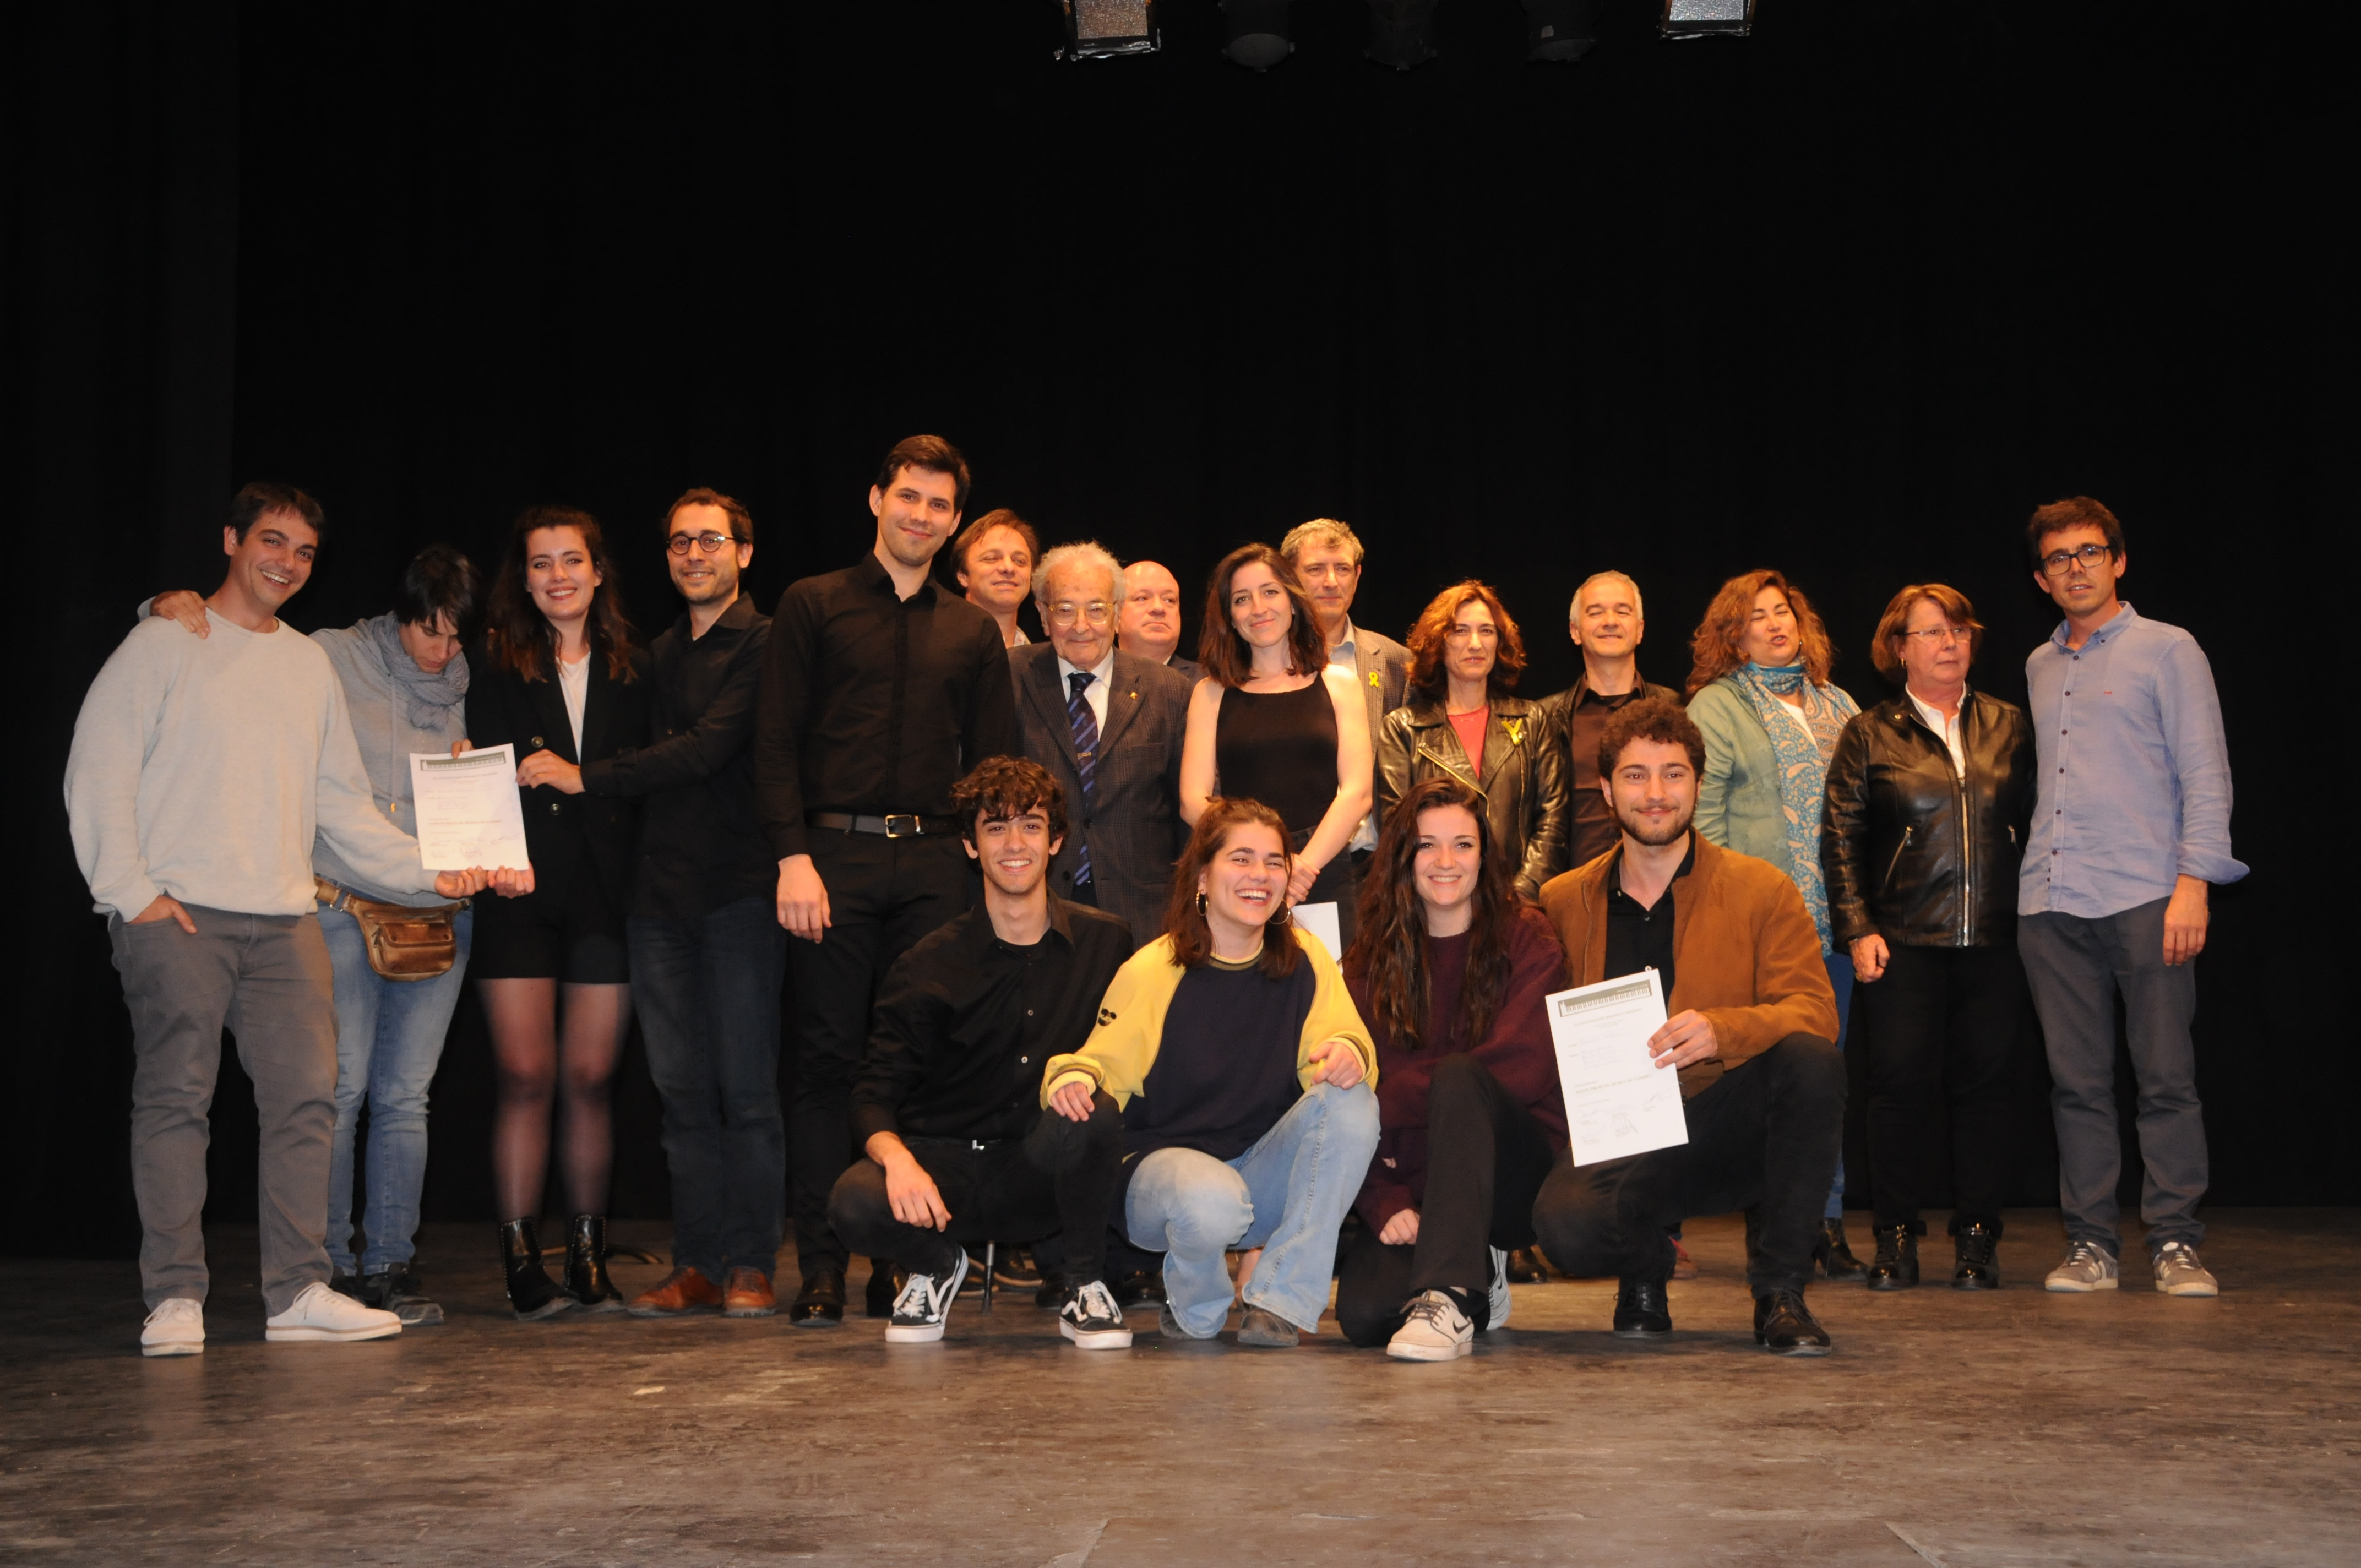 concurs mirabent magrans cambra 2019